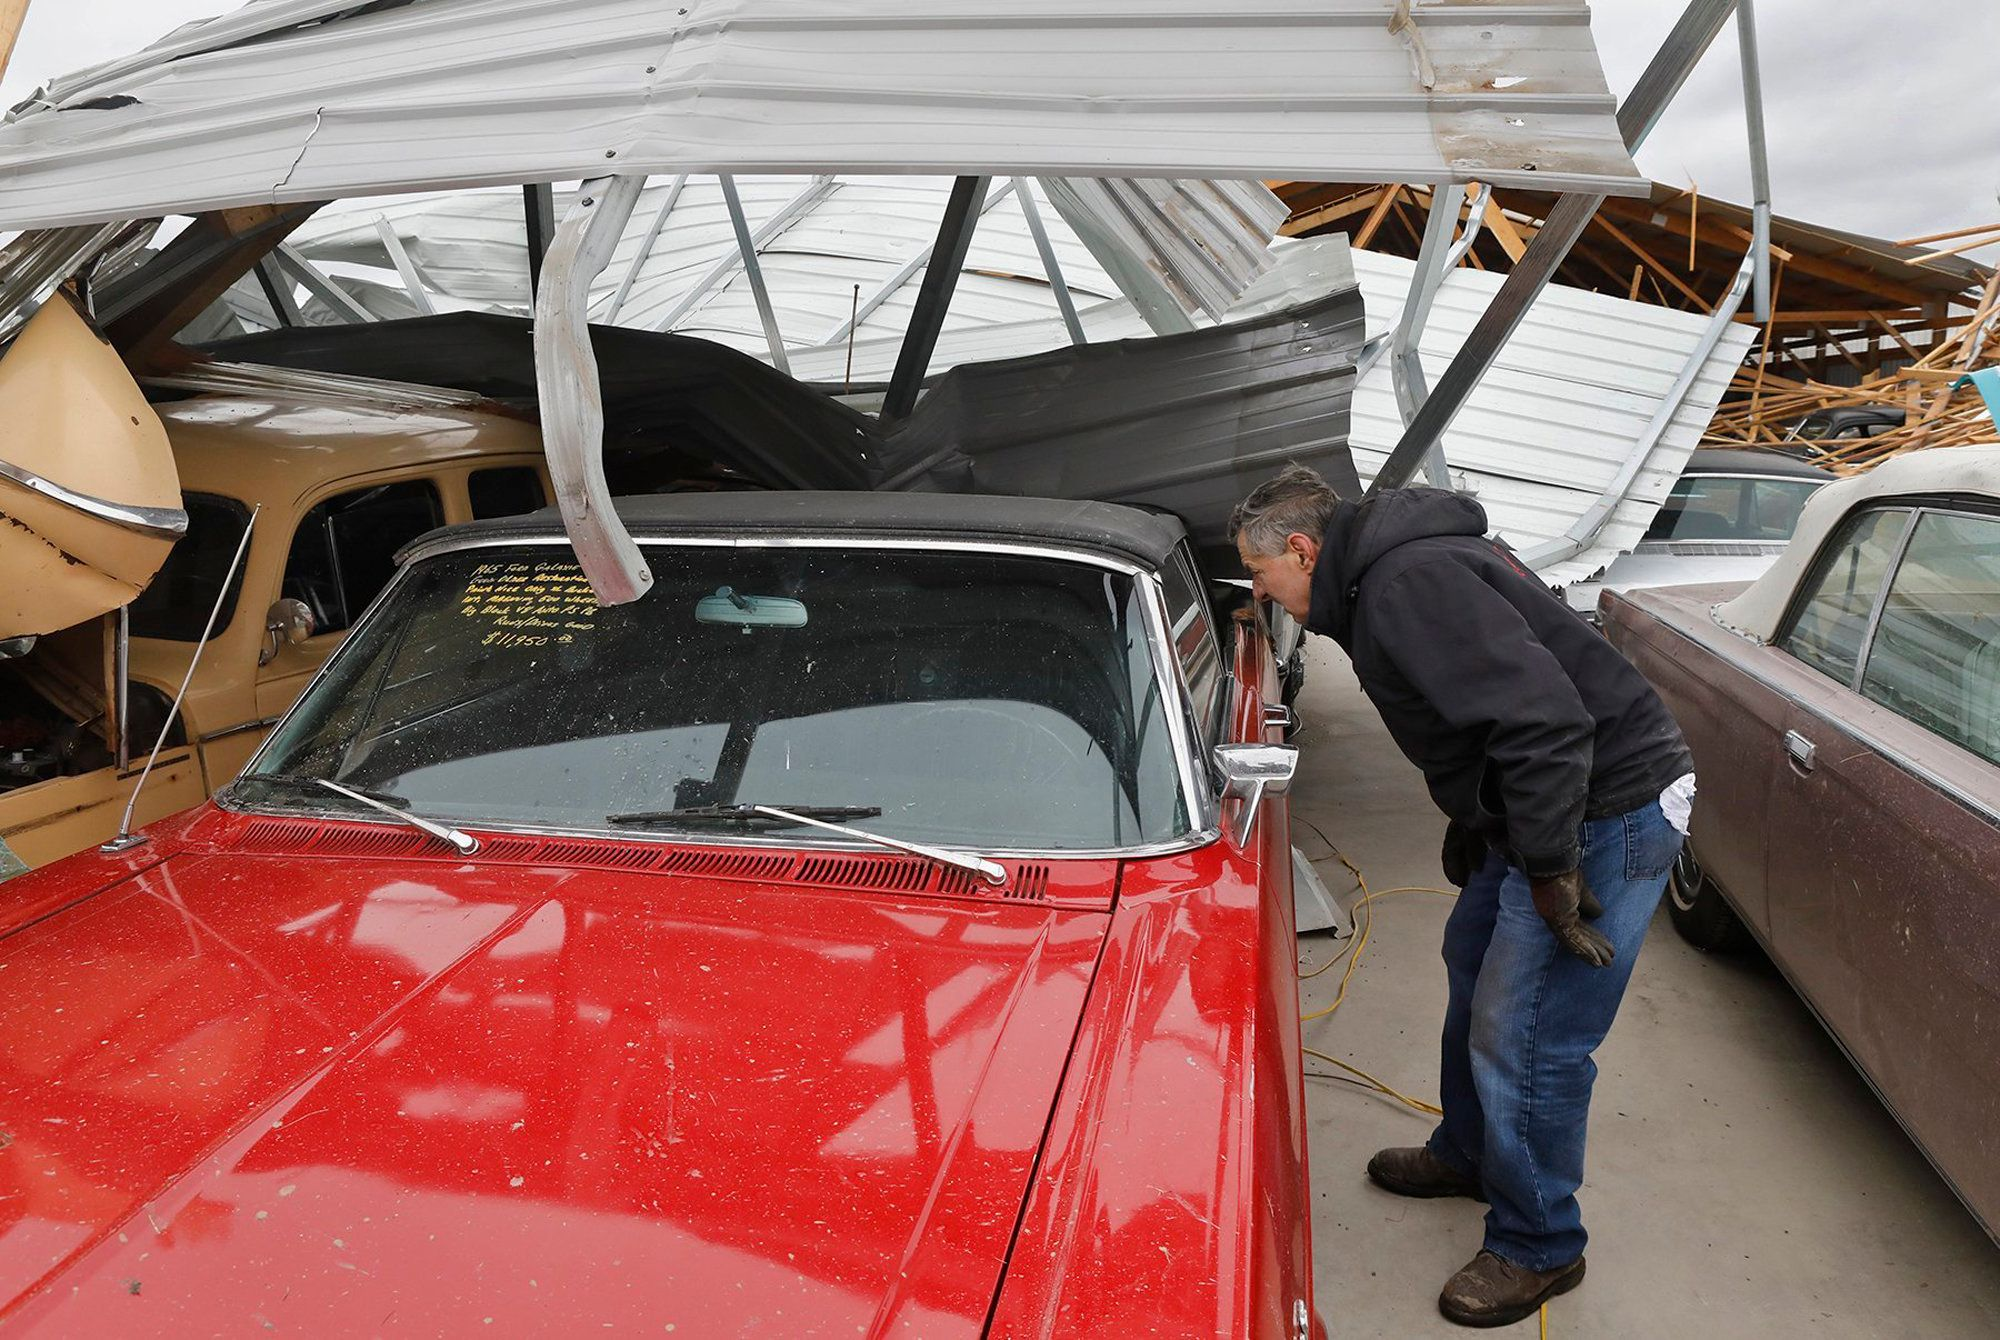 Russ Noel, owner of Country Classic Cars, looks at one of the damaged cars, Sunday, Dec. 2, 2018, at Country Classic Cars nea